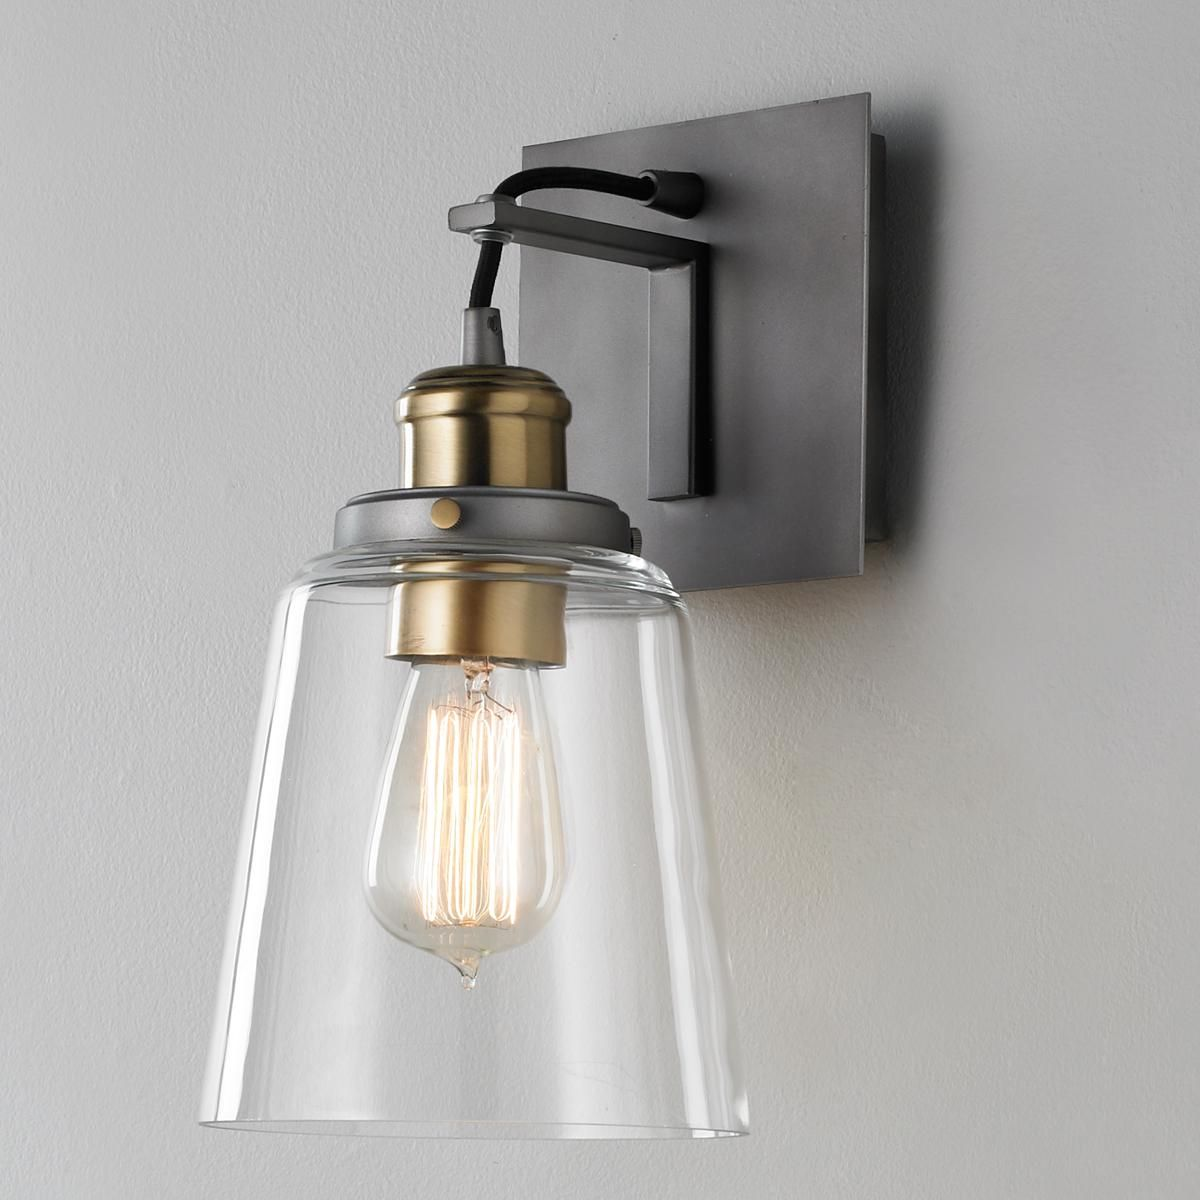 Vice Wall Sconce Polished Nickel Wall Sconces And